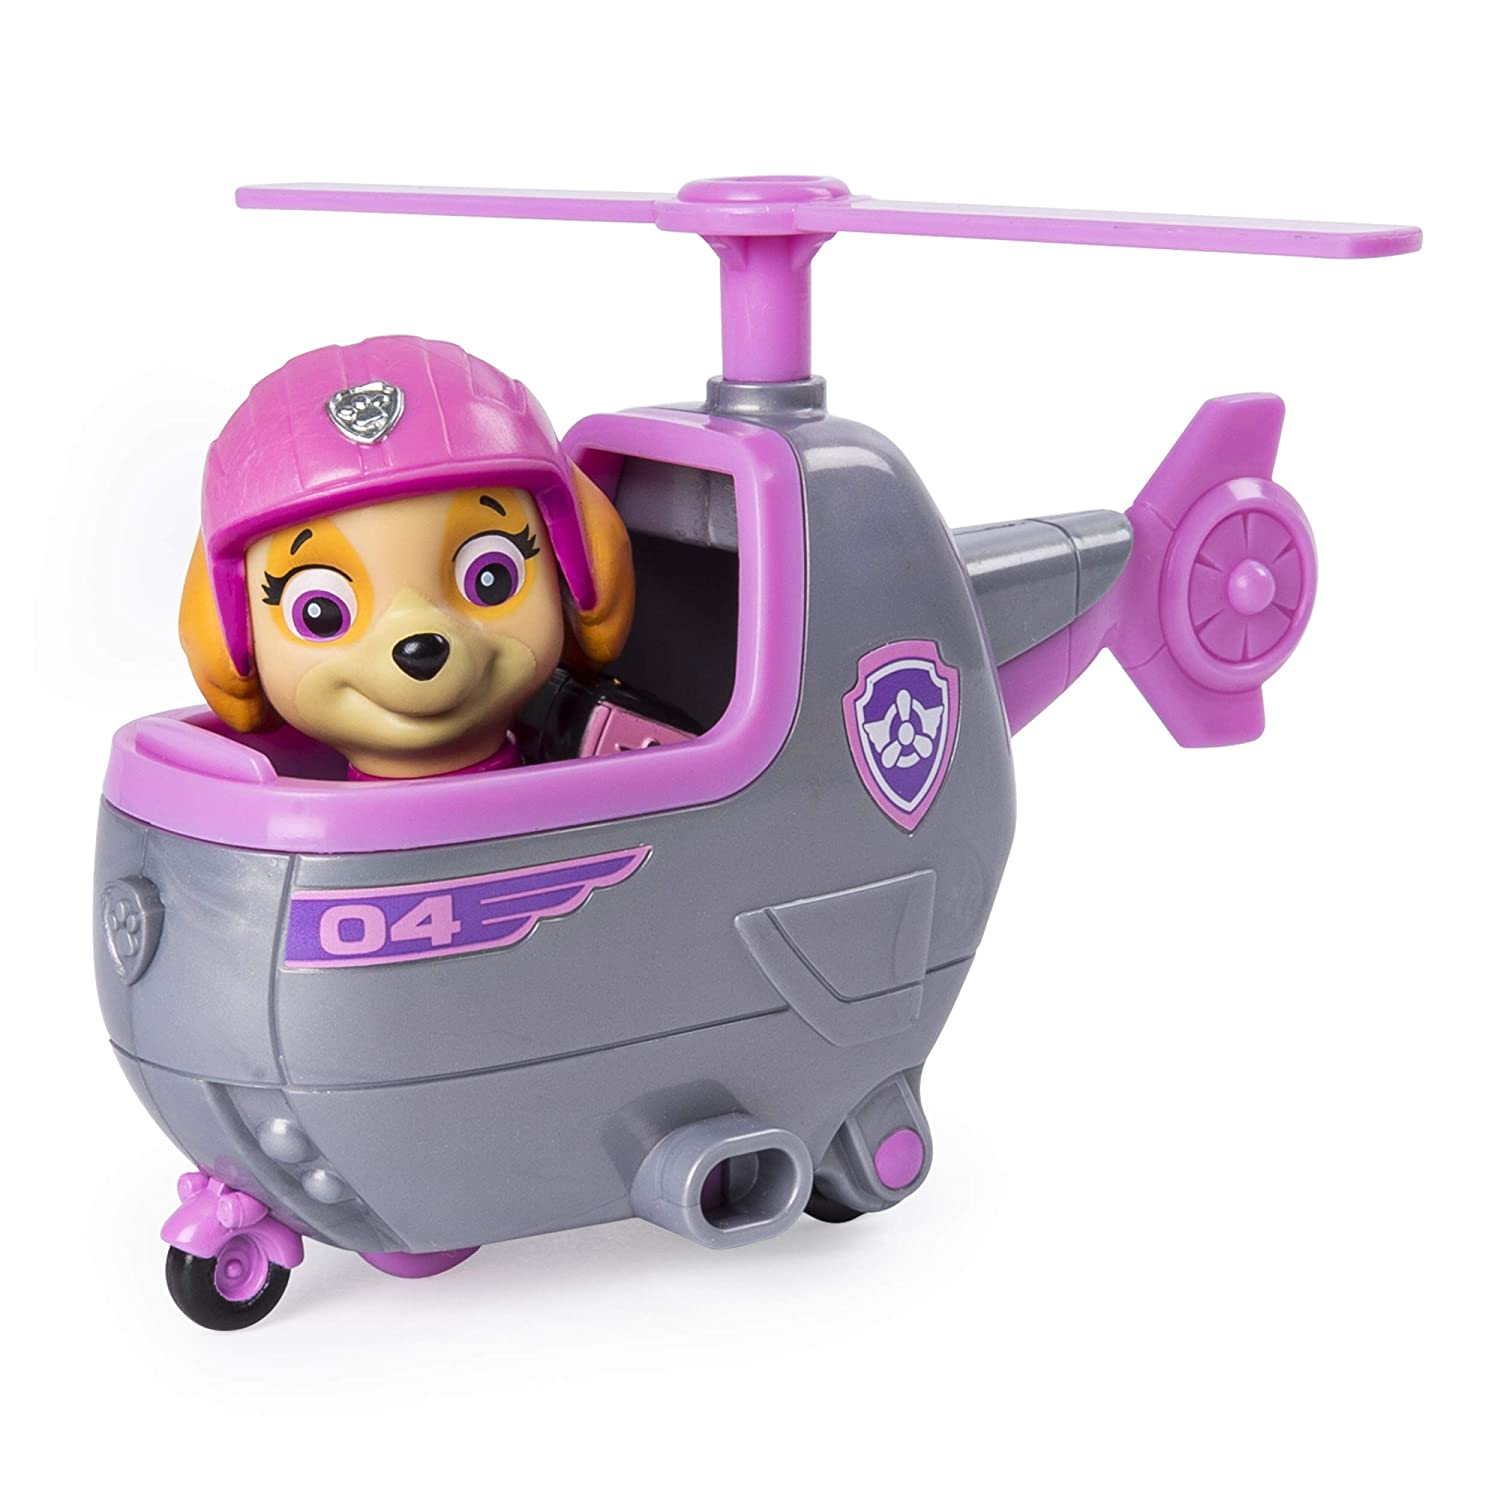 Ages 3 and Up Spin Master 20101380-6046667 PAW Patrol Ultimate Rescue Skyes Mini Helicopter with Collectible Figure